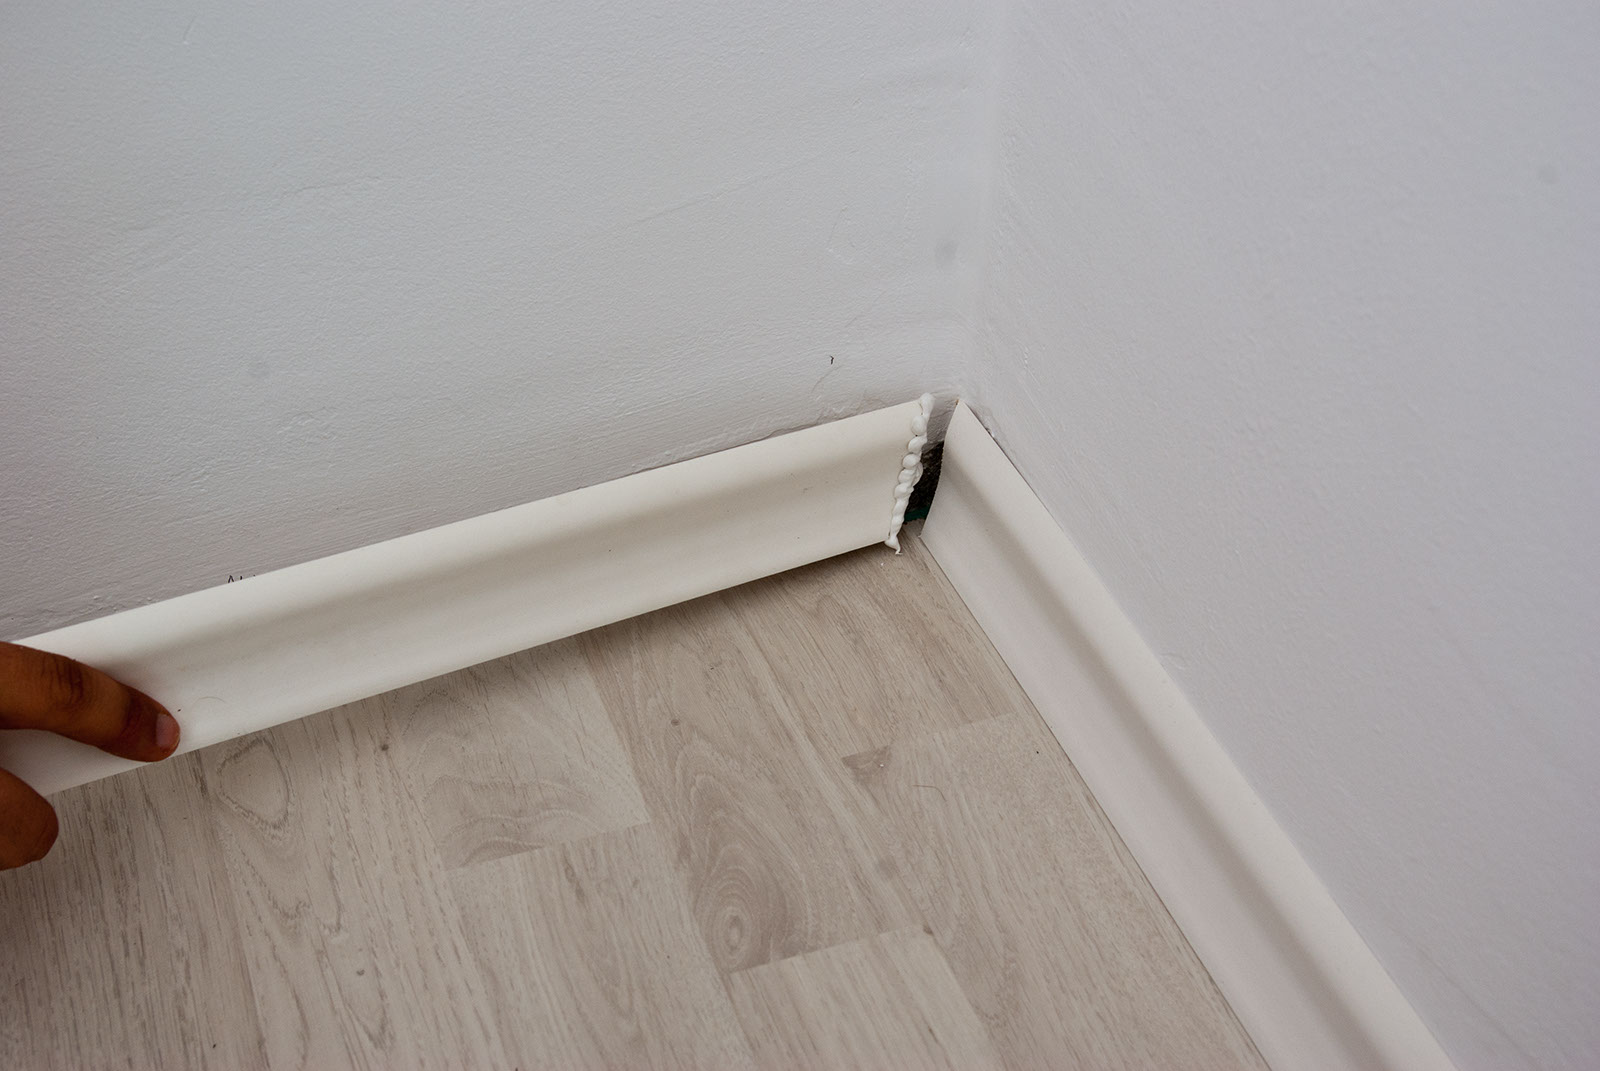 How to install baseboard trim